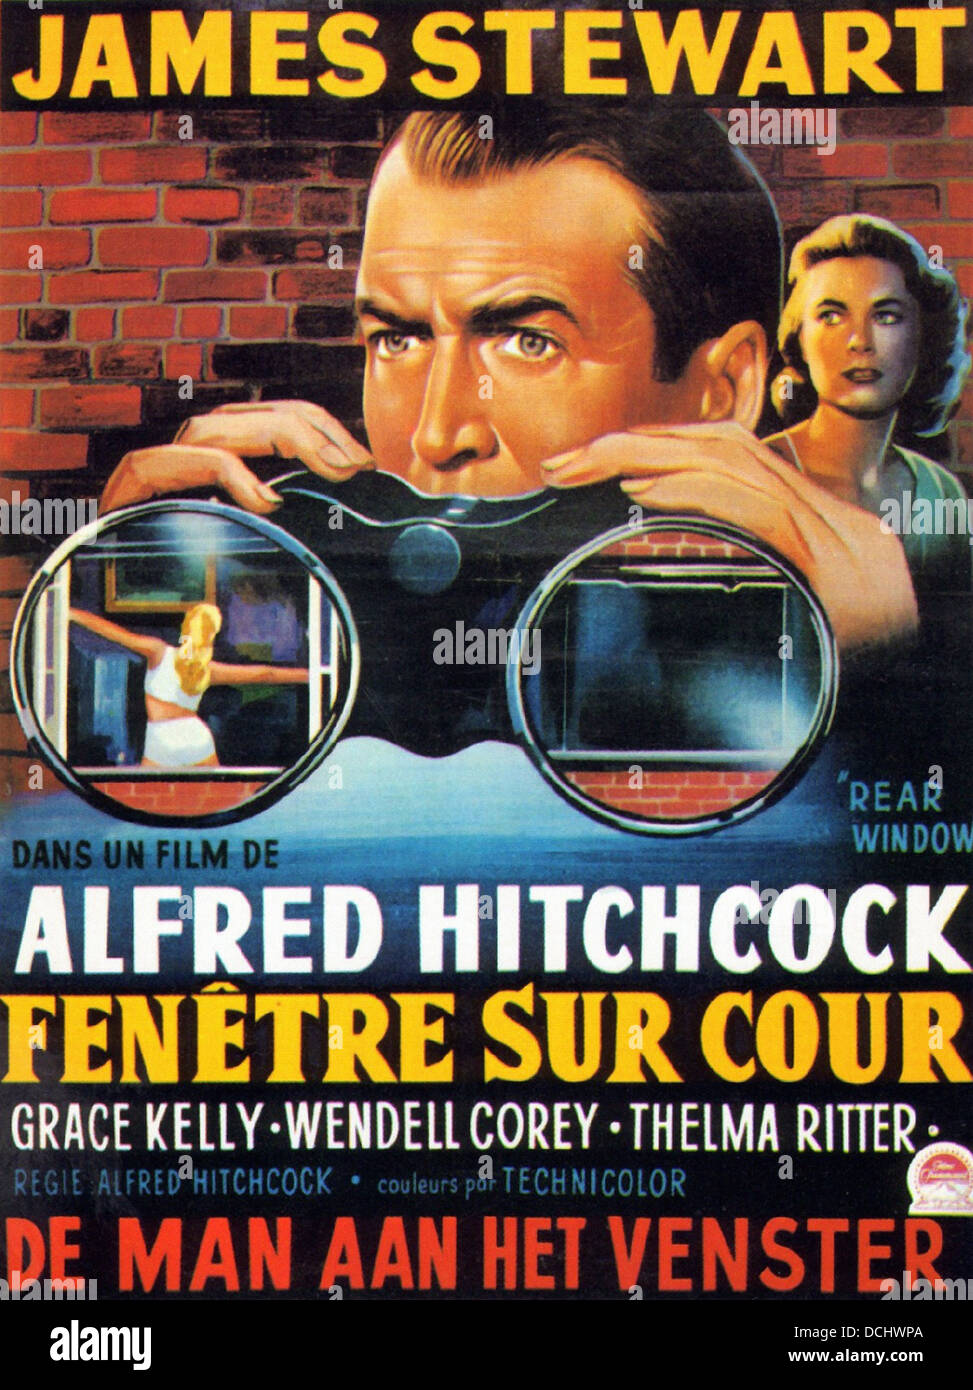 REAR WINDOW FRENCH MOVIE POSTER Directed by Alfred Hitchcock. Paramount, 1954. - Stock Image